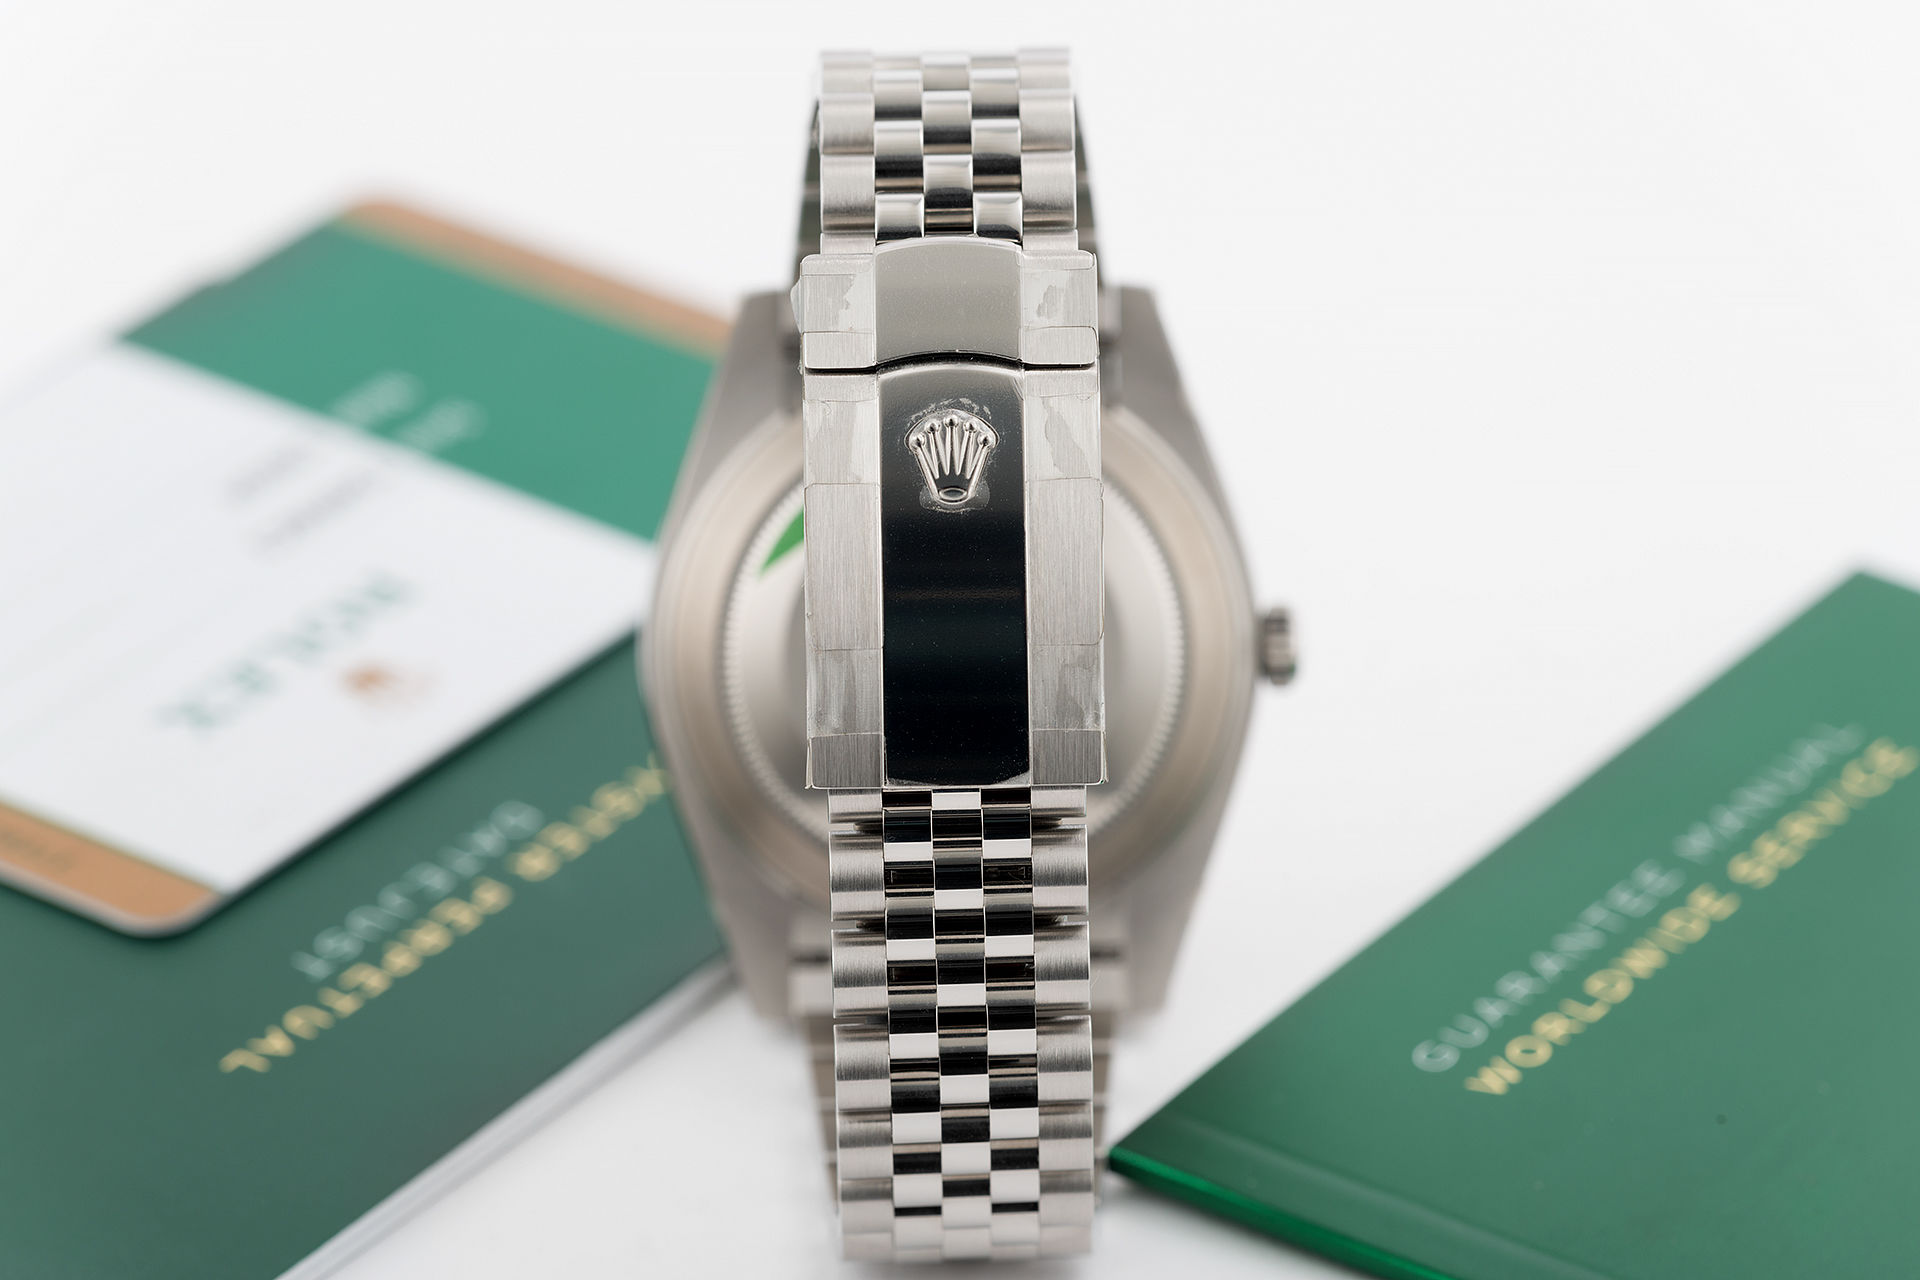 ref 126334 | Brand New 'Mother of Pearl' | Rolex Datejust 41